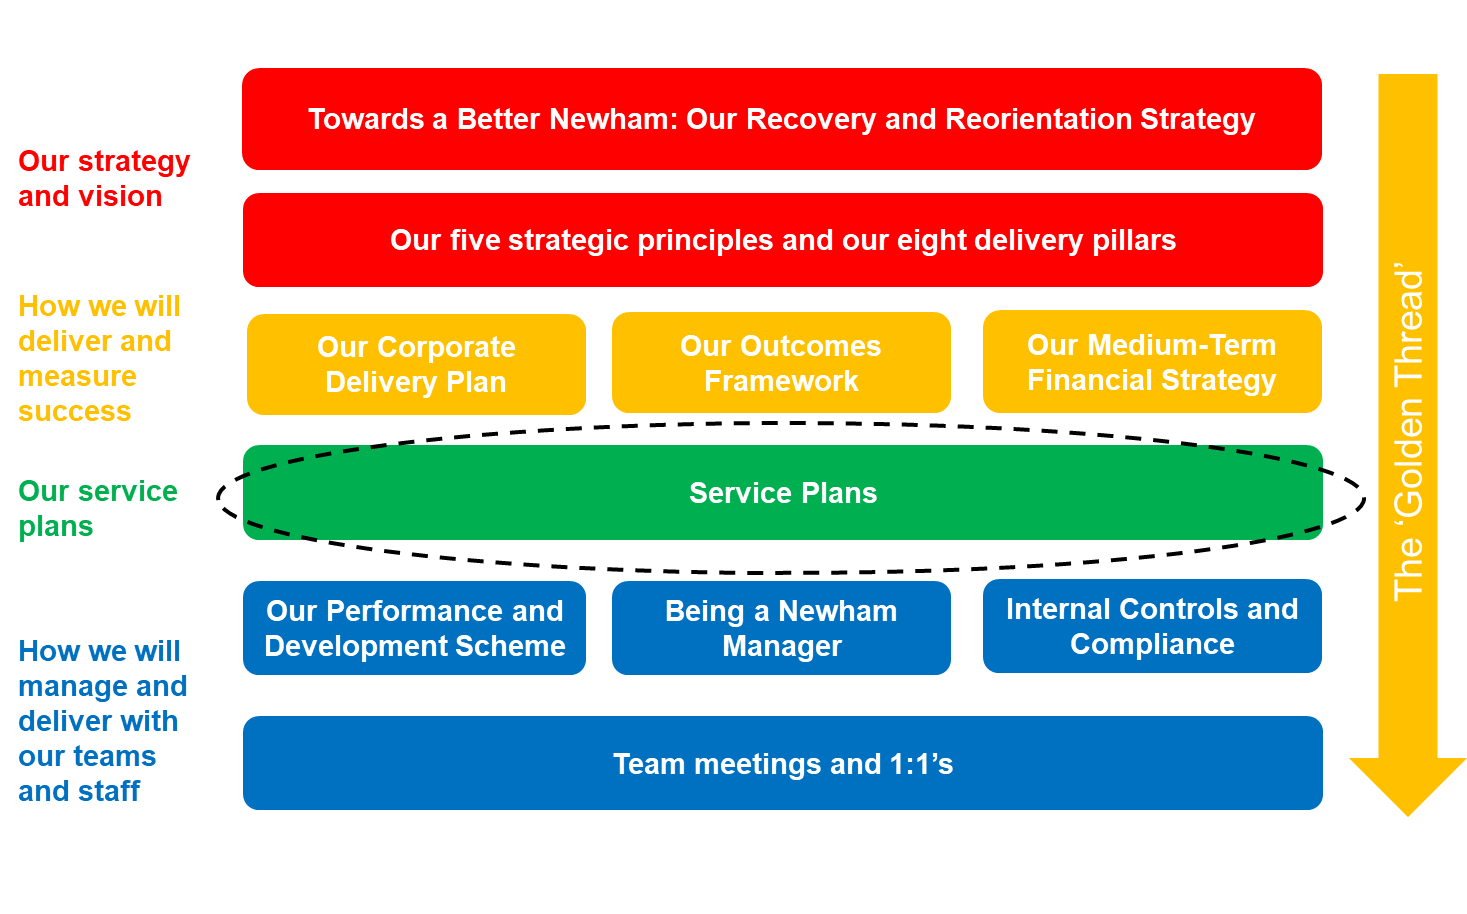 Our five strategic principles and our eight delivery pillars.